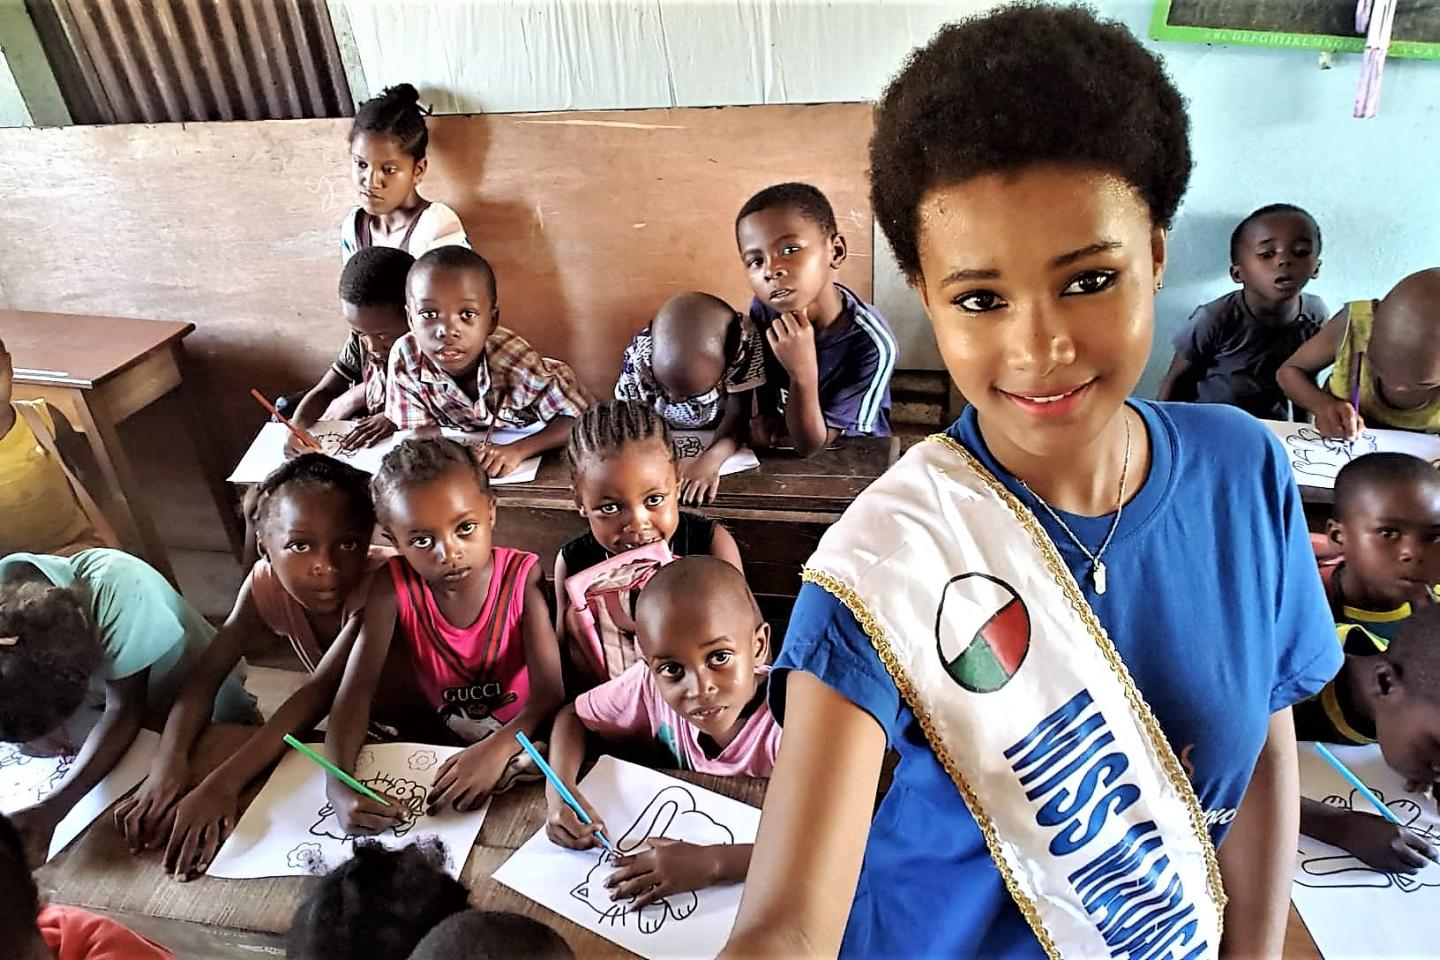 A beauty pageant at the service of education | UNICEF Madagascar